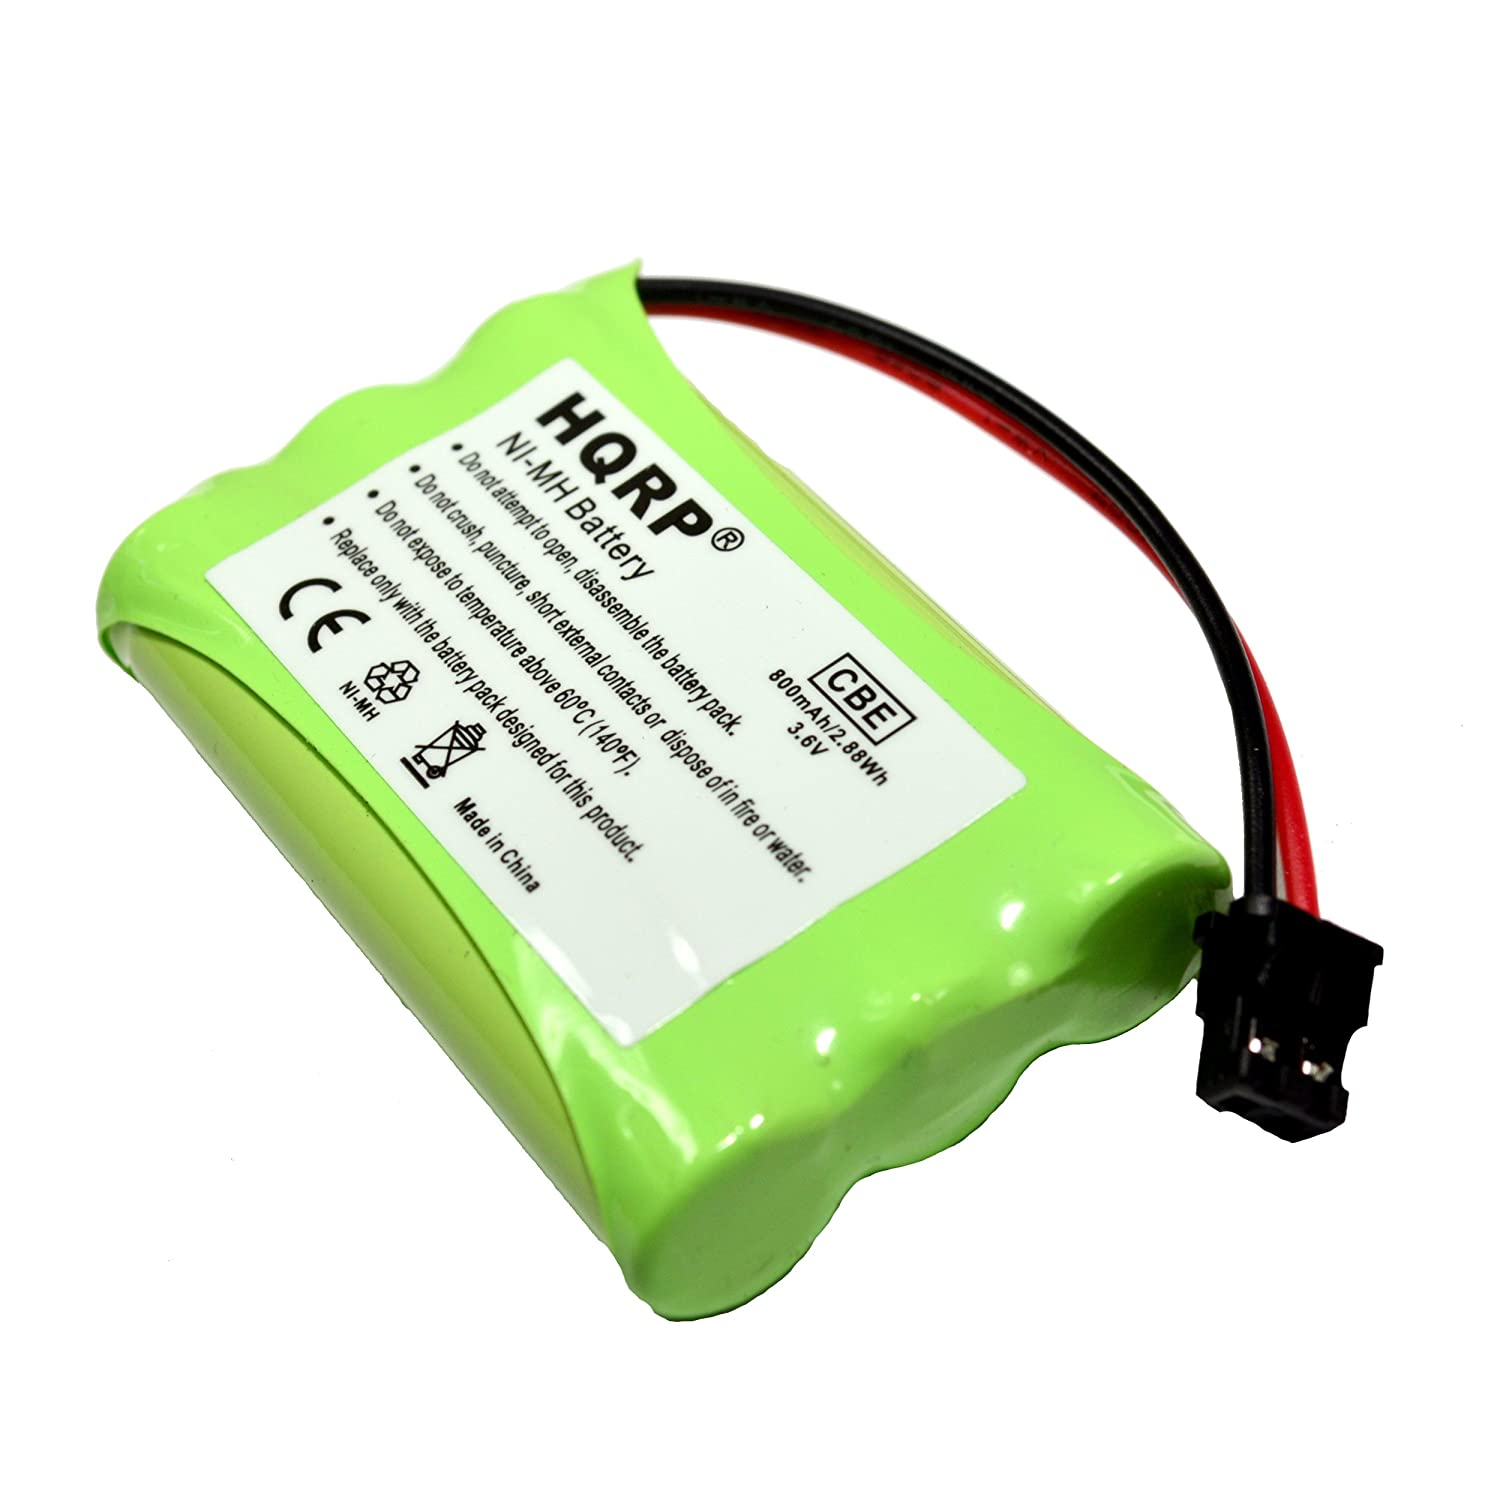 Amazon.com: HQRP Cordless Phone Battery compatible with Uniden PowerMax  5.8GHz 30878864022, Powermax 2.4 GHz, GE TL26402, GP 80AAALH3BMX, ...